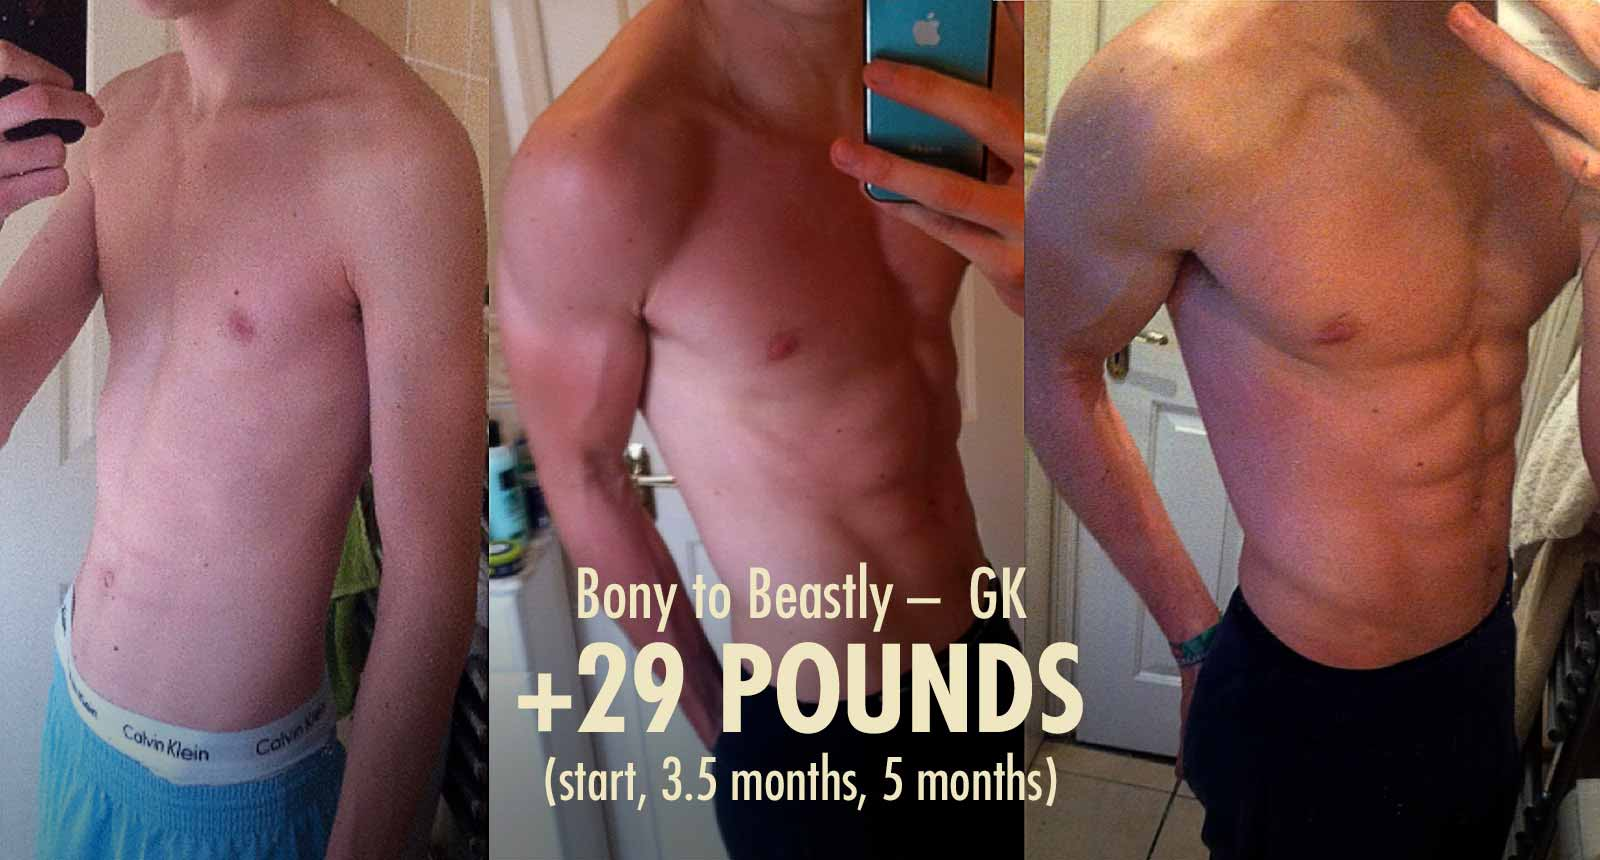 Before and after photo showing that a typical bodybuilding diet produces leaner gains than building muscle on keto.